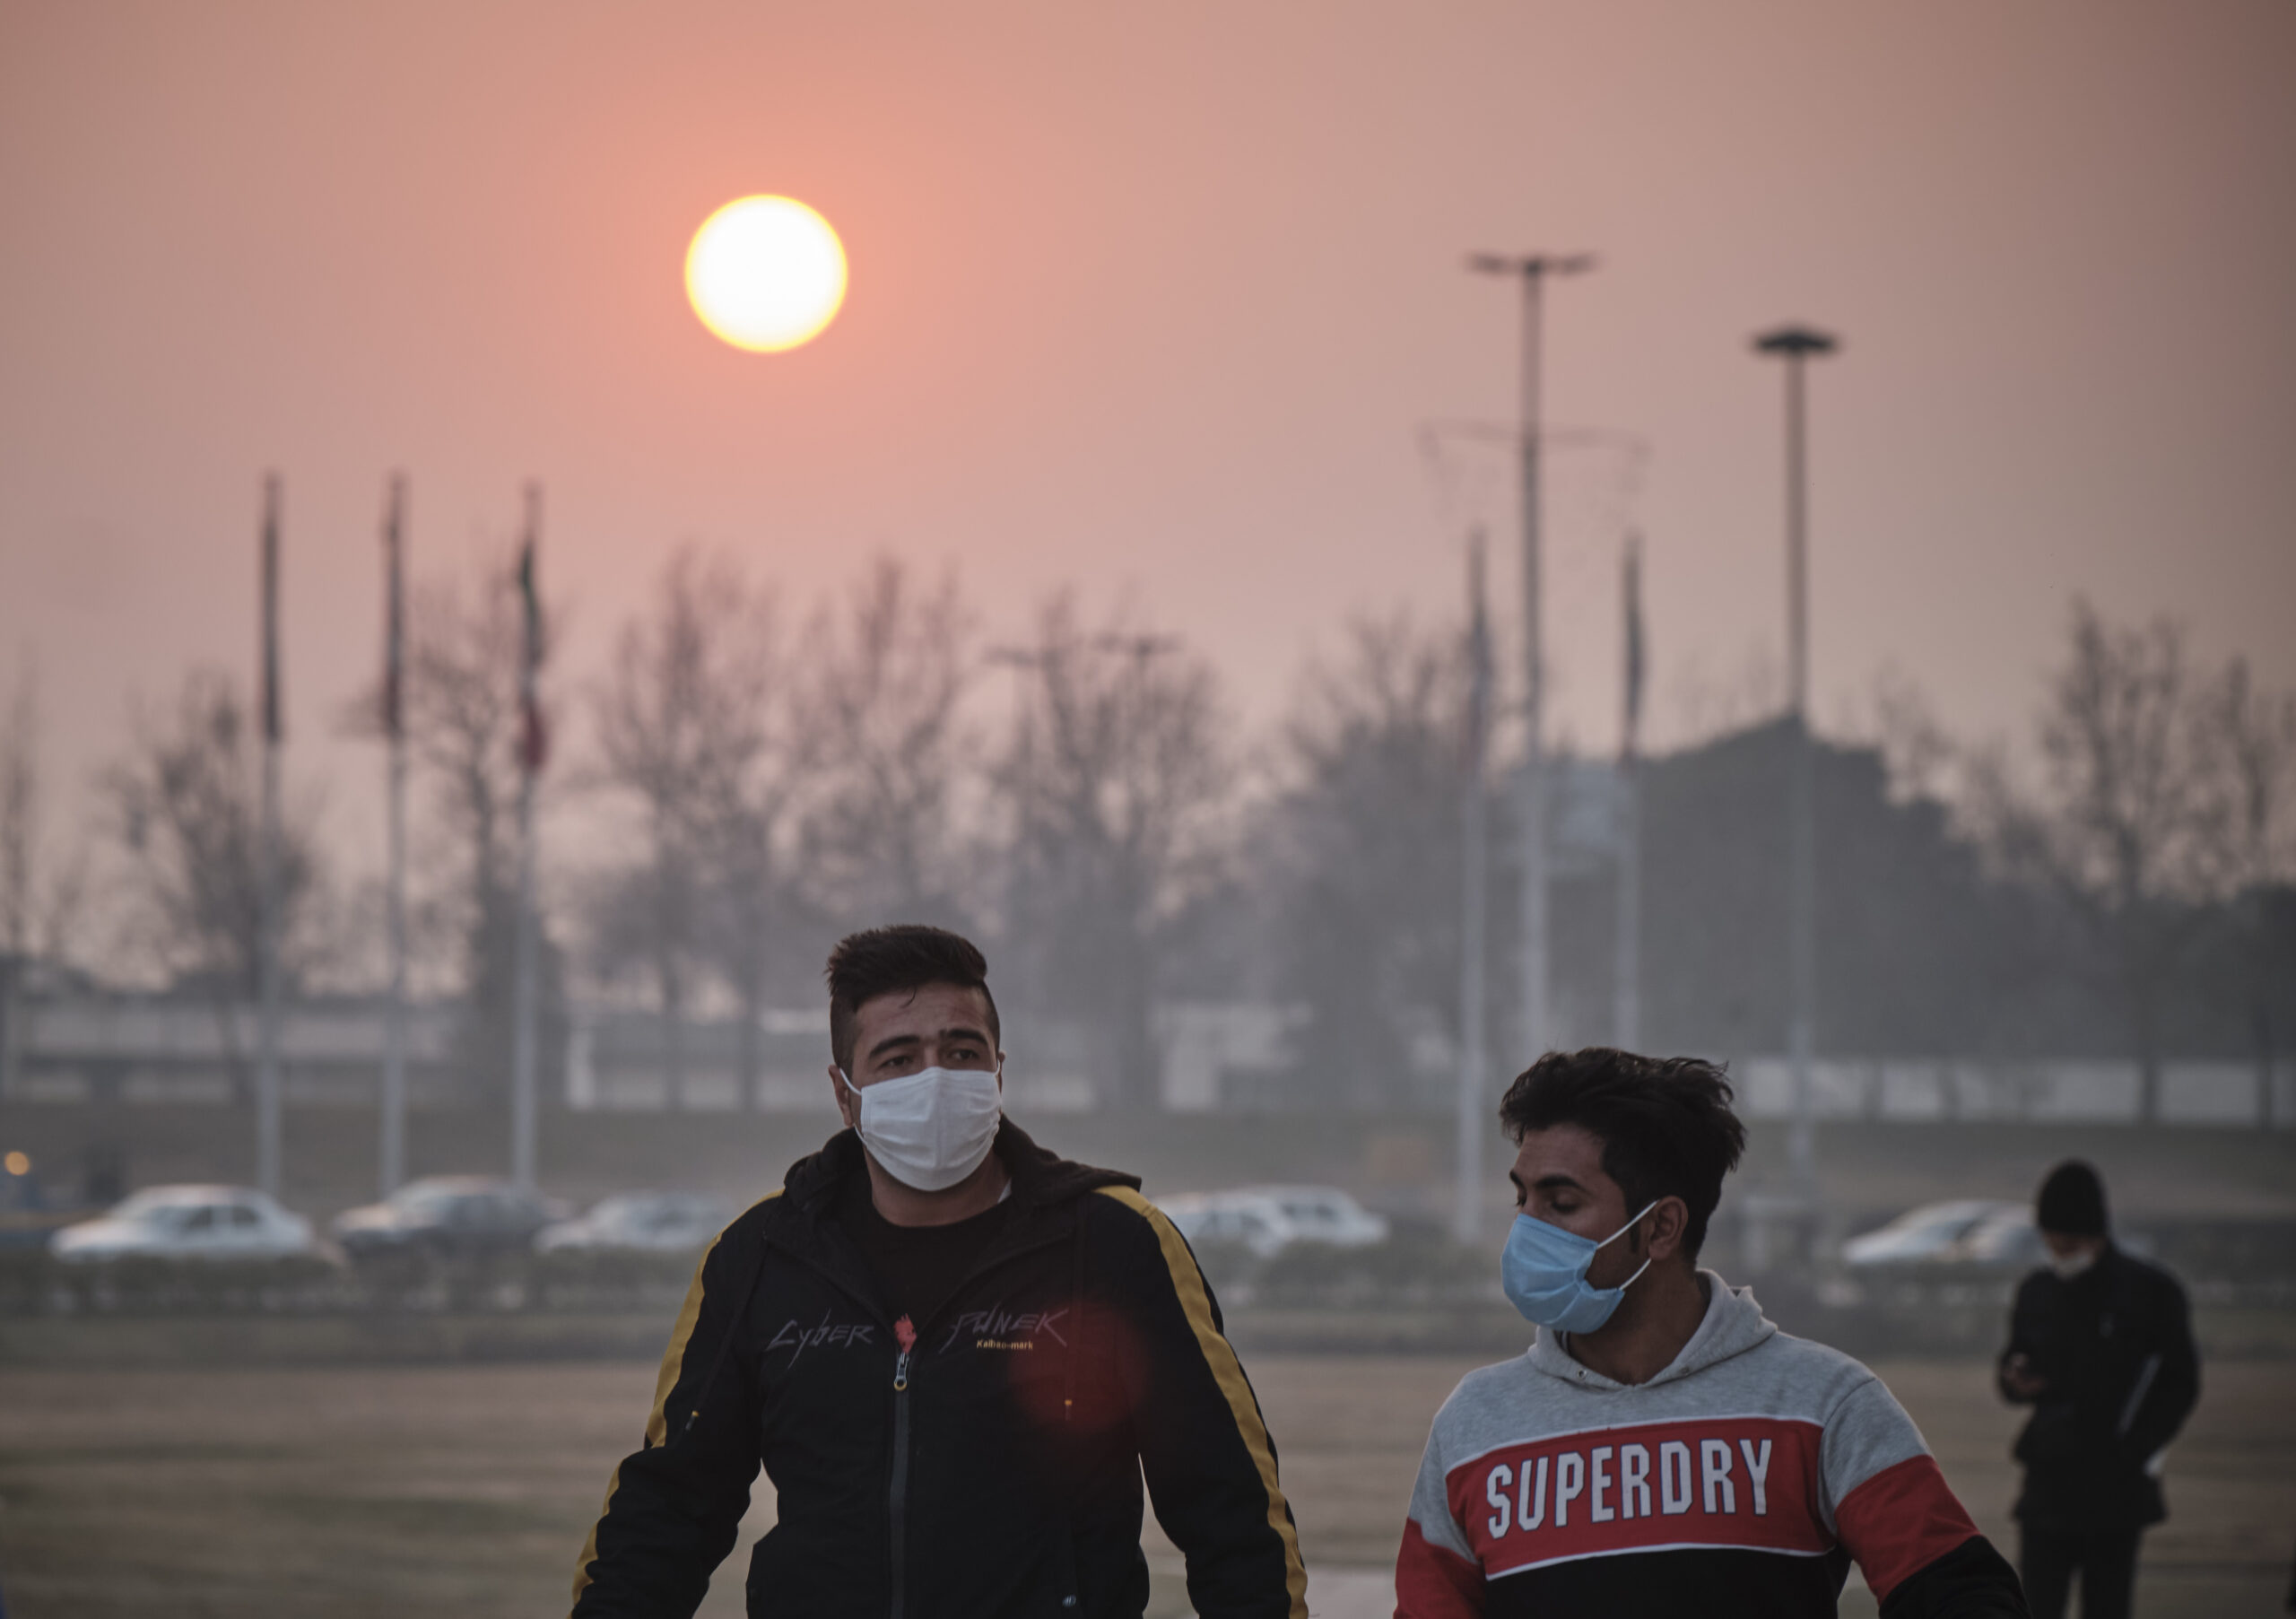 Two Iranian men wearing protective face masks walk along the Azadi (Freedom) Square in western Tehran during a polluted air, following the Covid-19 outbreak in Iran, on January 12, 2021. Credit: Morteza Nikoubazl/NurPhoto via Getty Images